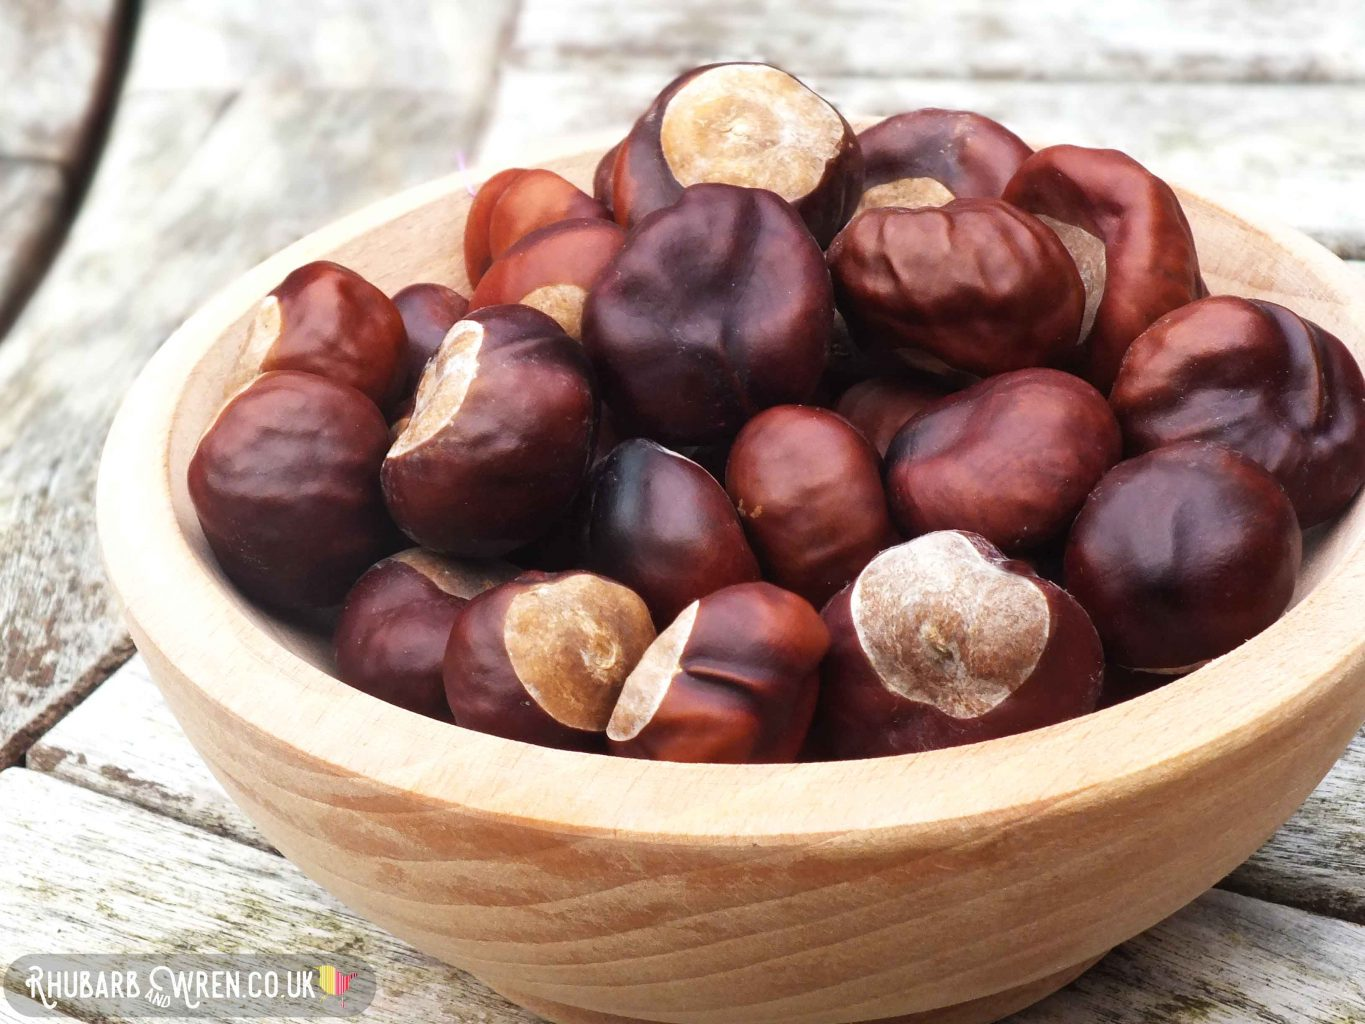 wooden bowl of shiny and wrinkly conkers for making conker comets